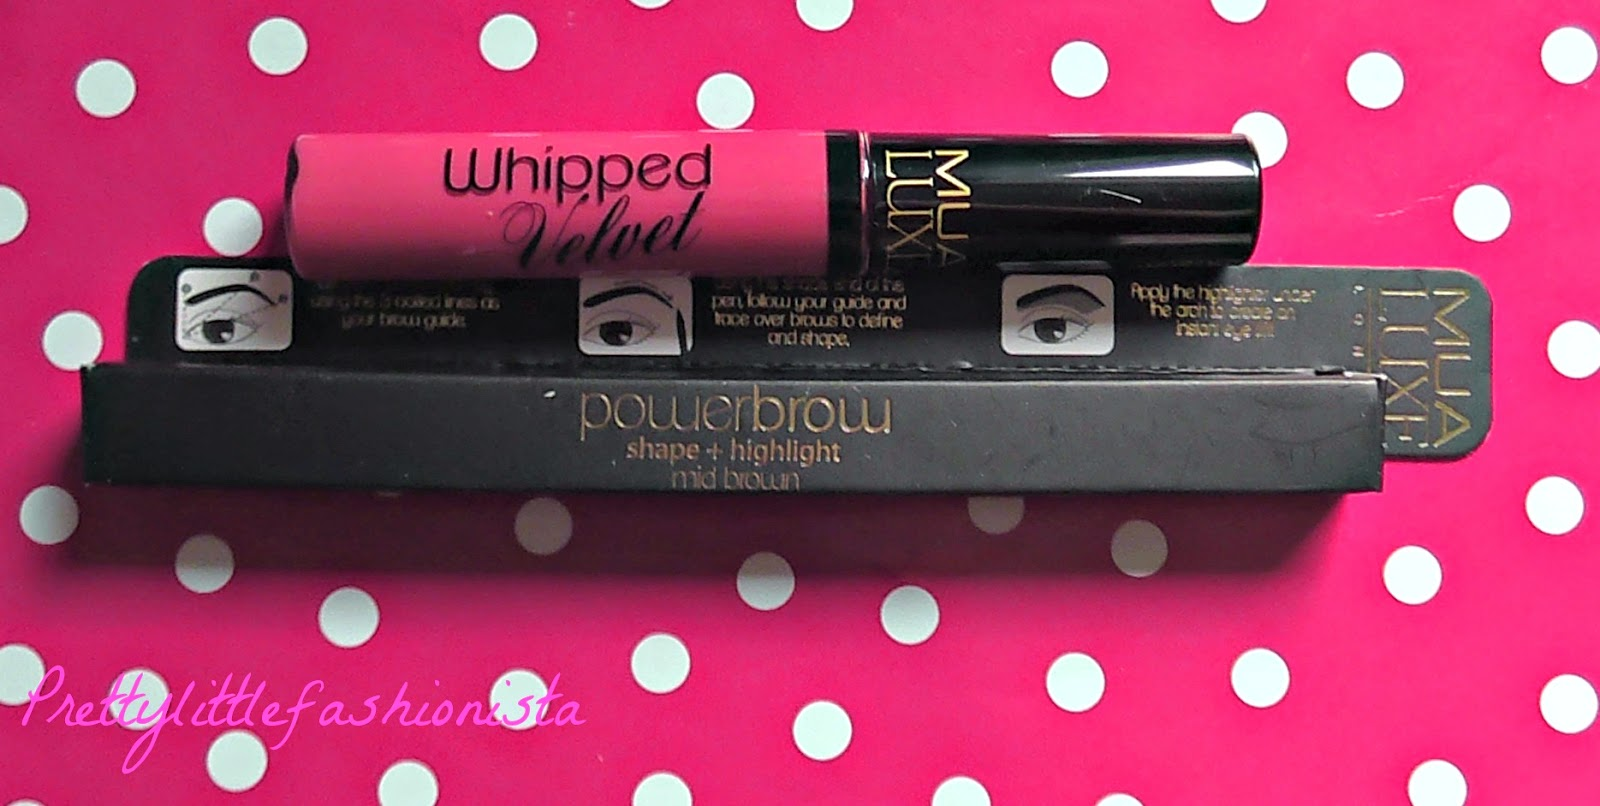 Power Brow and Whipped Velvet Lip Lacquer in Ritzy